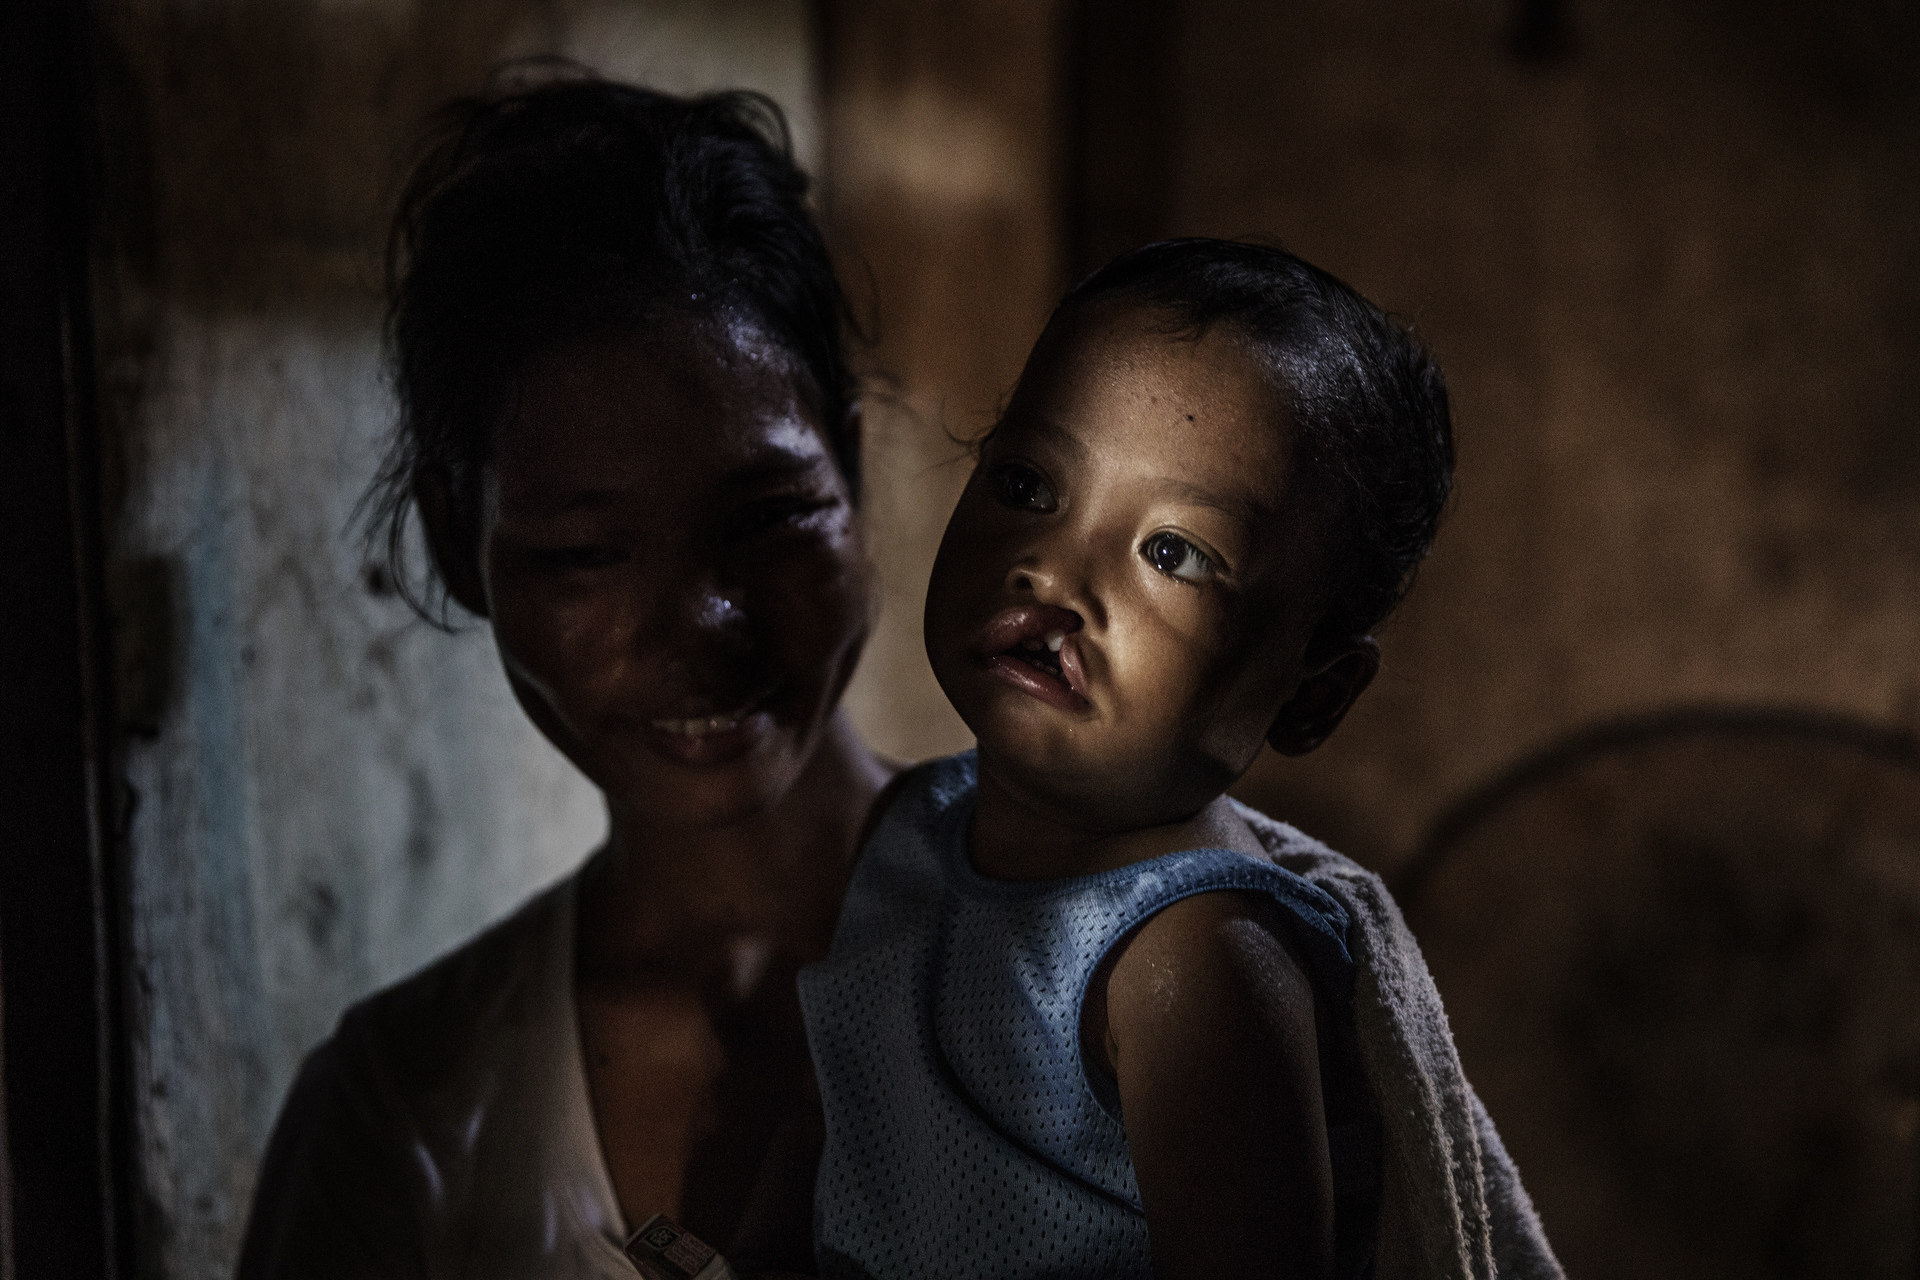 Sydney humanitarian photography, charity, Operation restore hope, cleft lip, cleft palate, Philippines, children, baby, plastic surgery, help, smile, Doctors, surgery, poverty